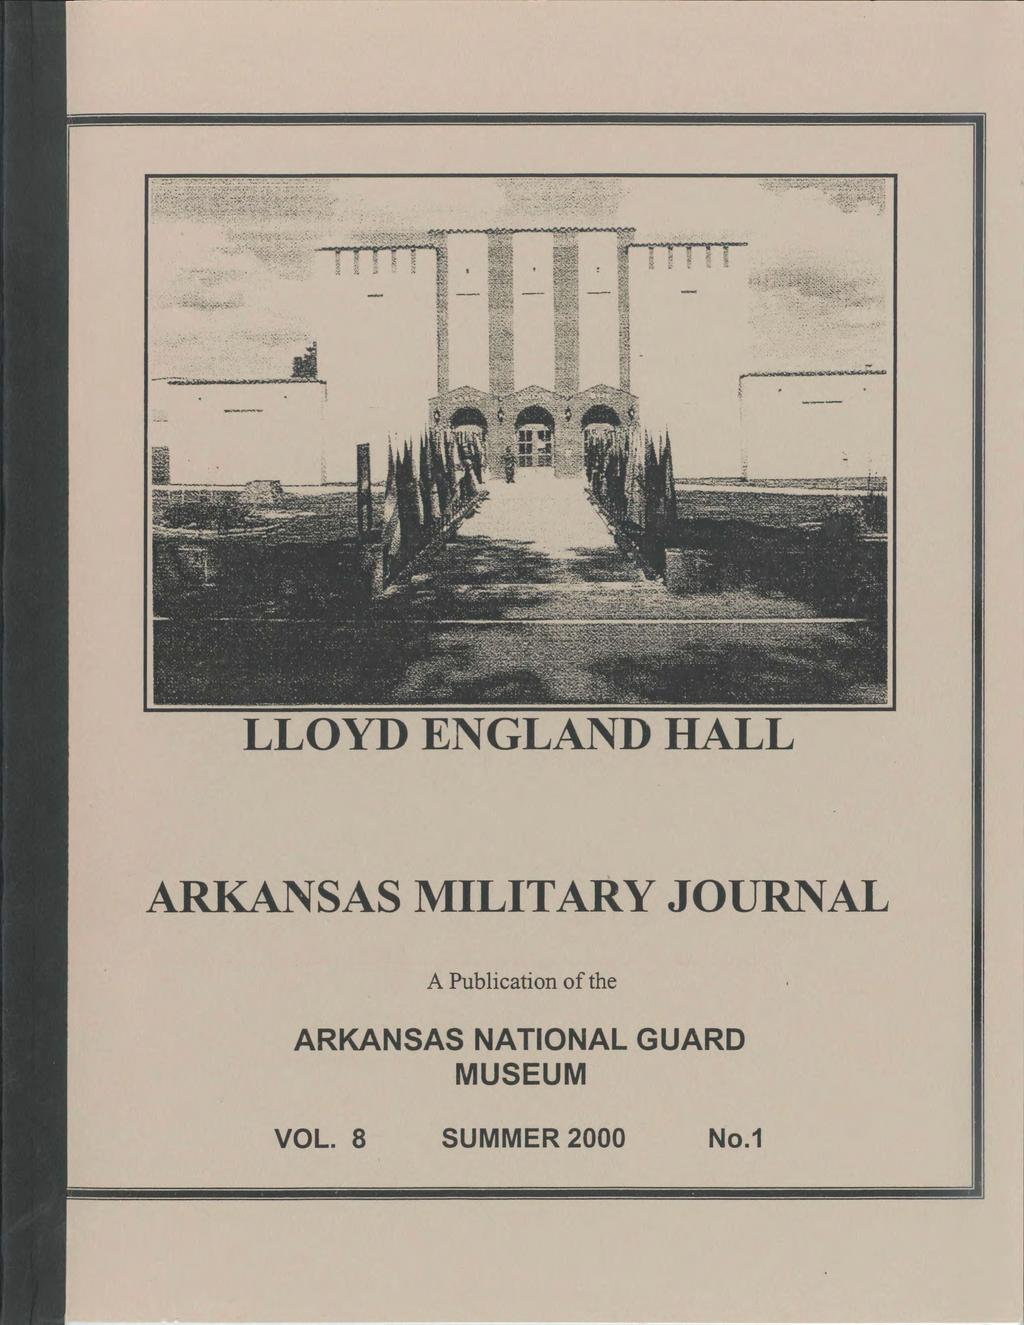 LLOYD ENGLAND HALL ARKANSAS MILITARY JOURNAL A Publication